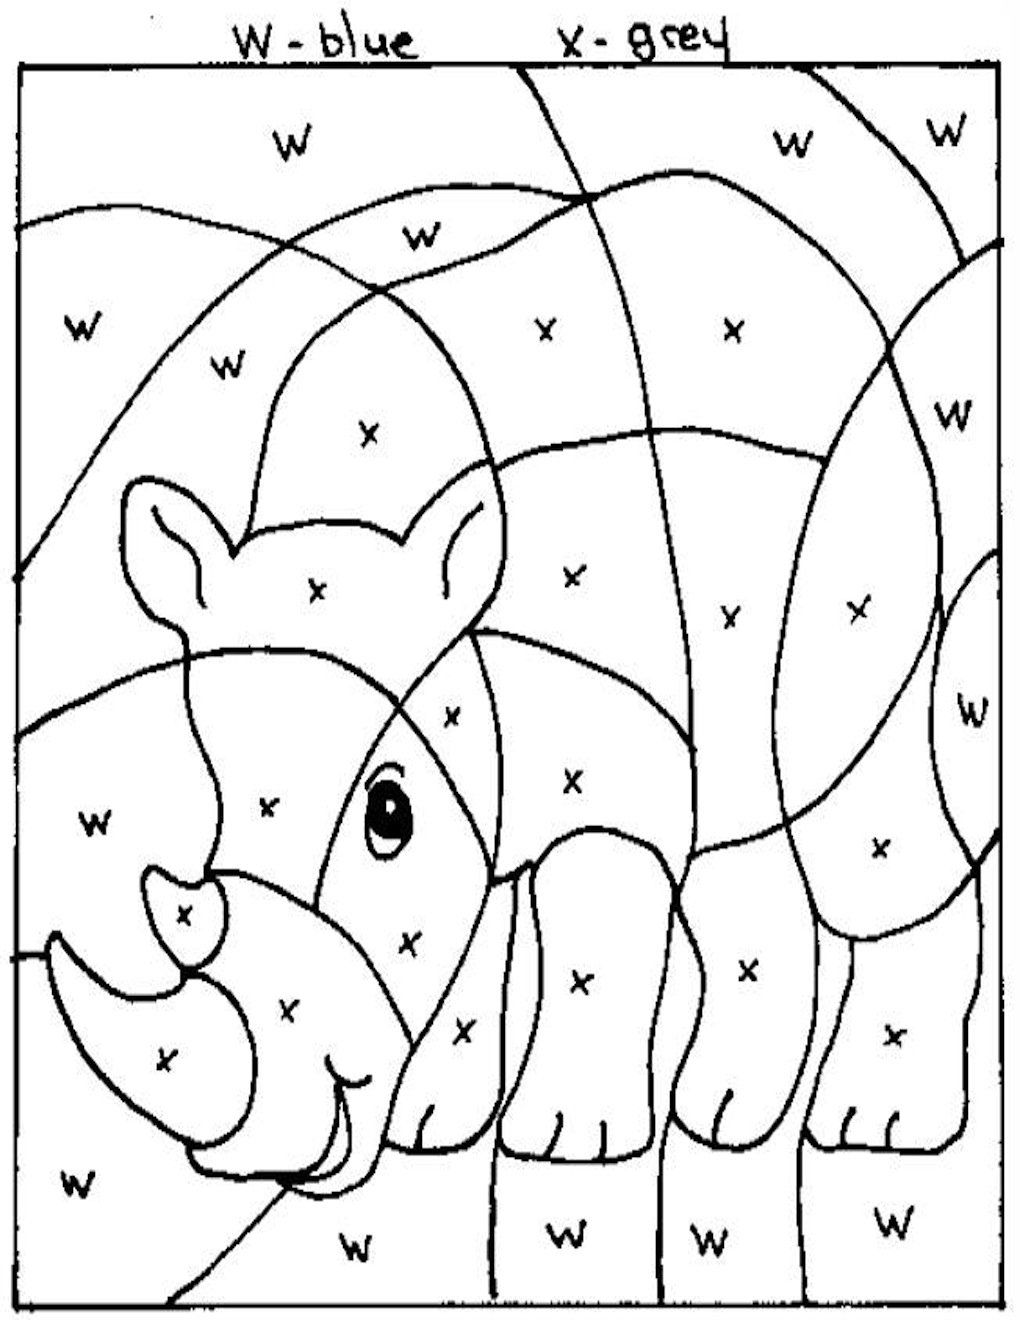 www.education coloring pages.com | onae Coloring /education/animals ...